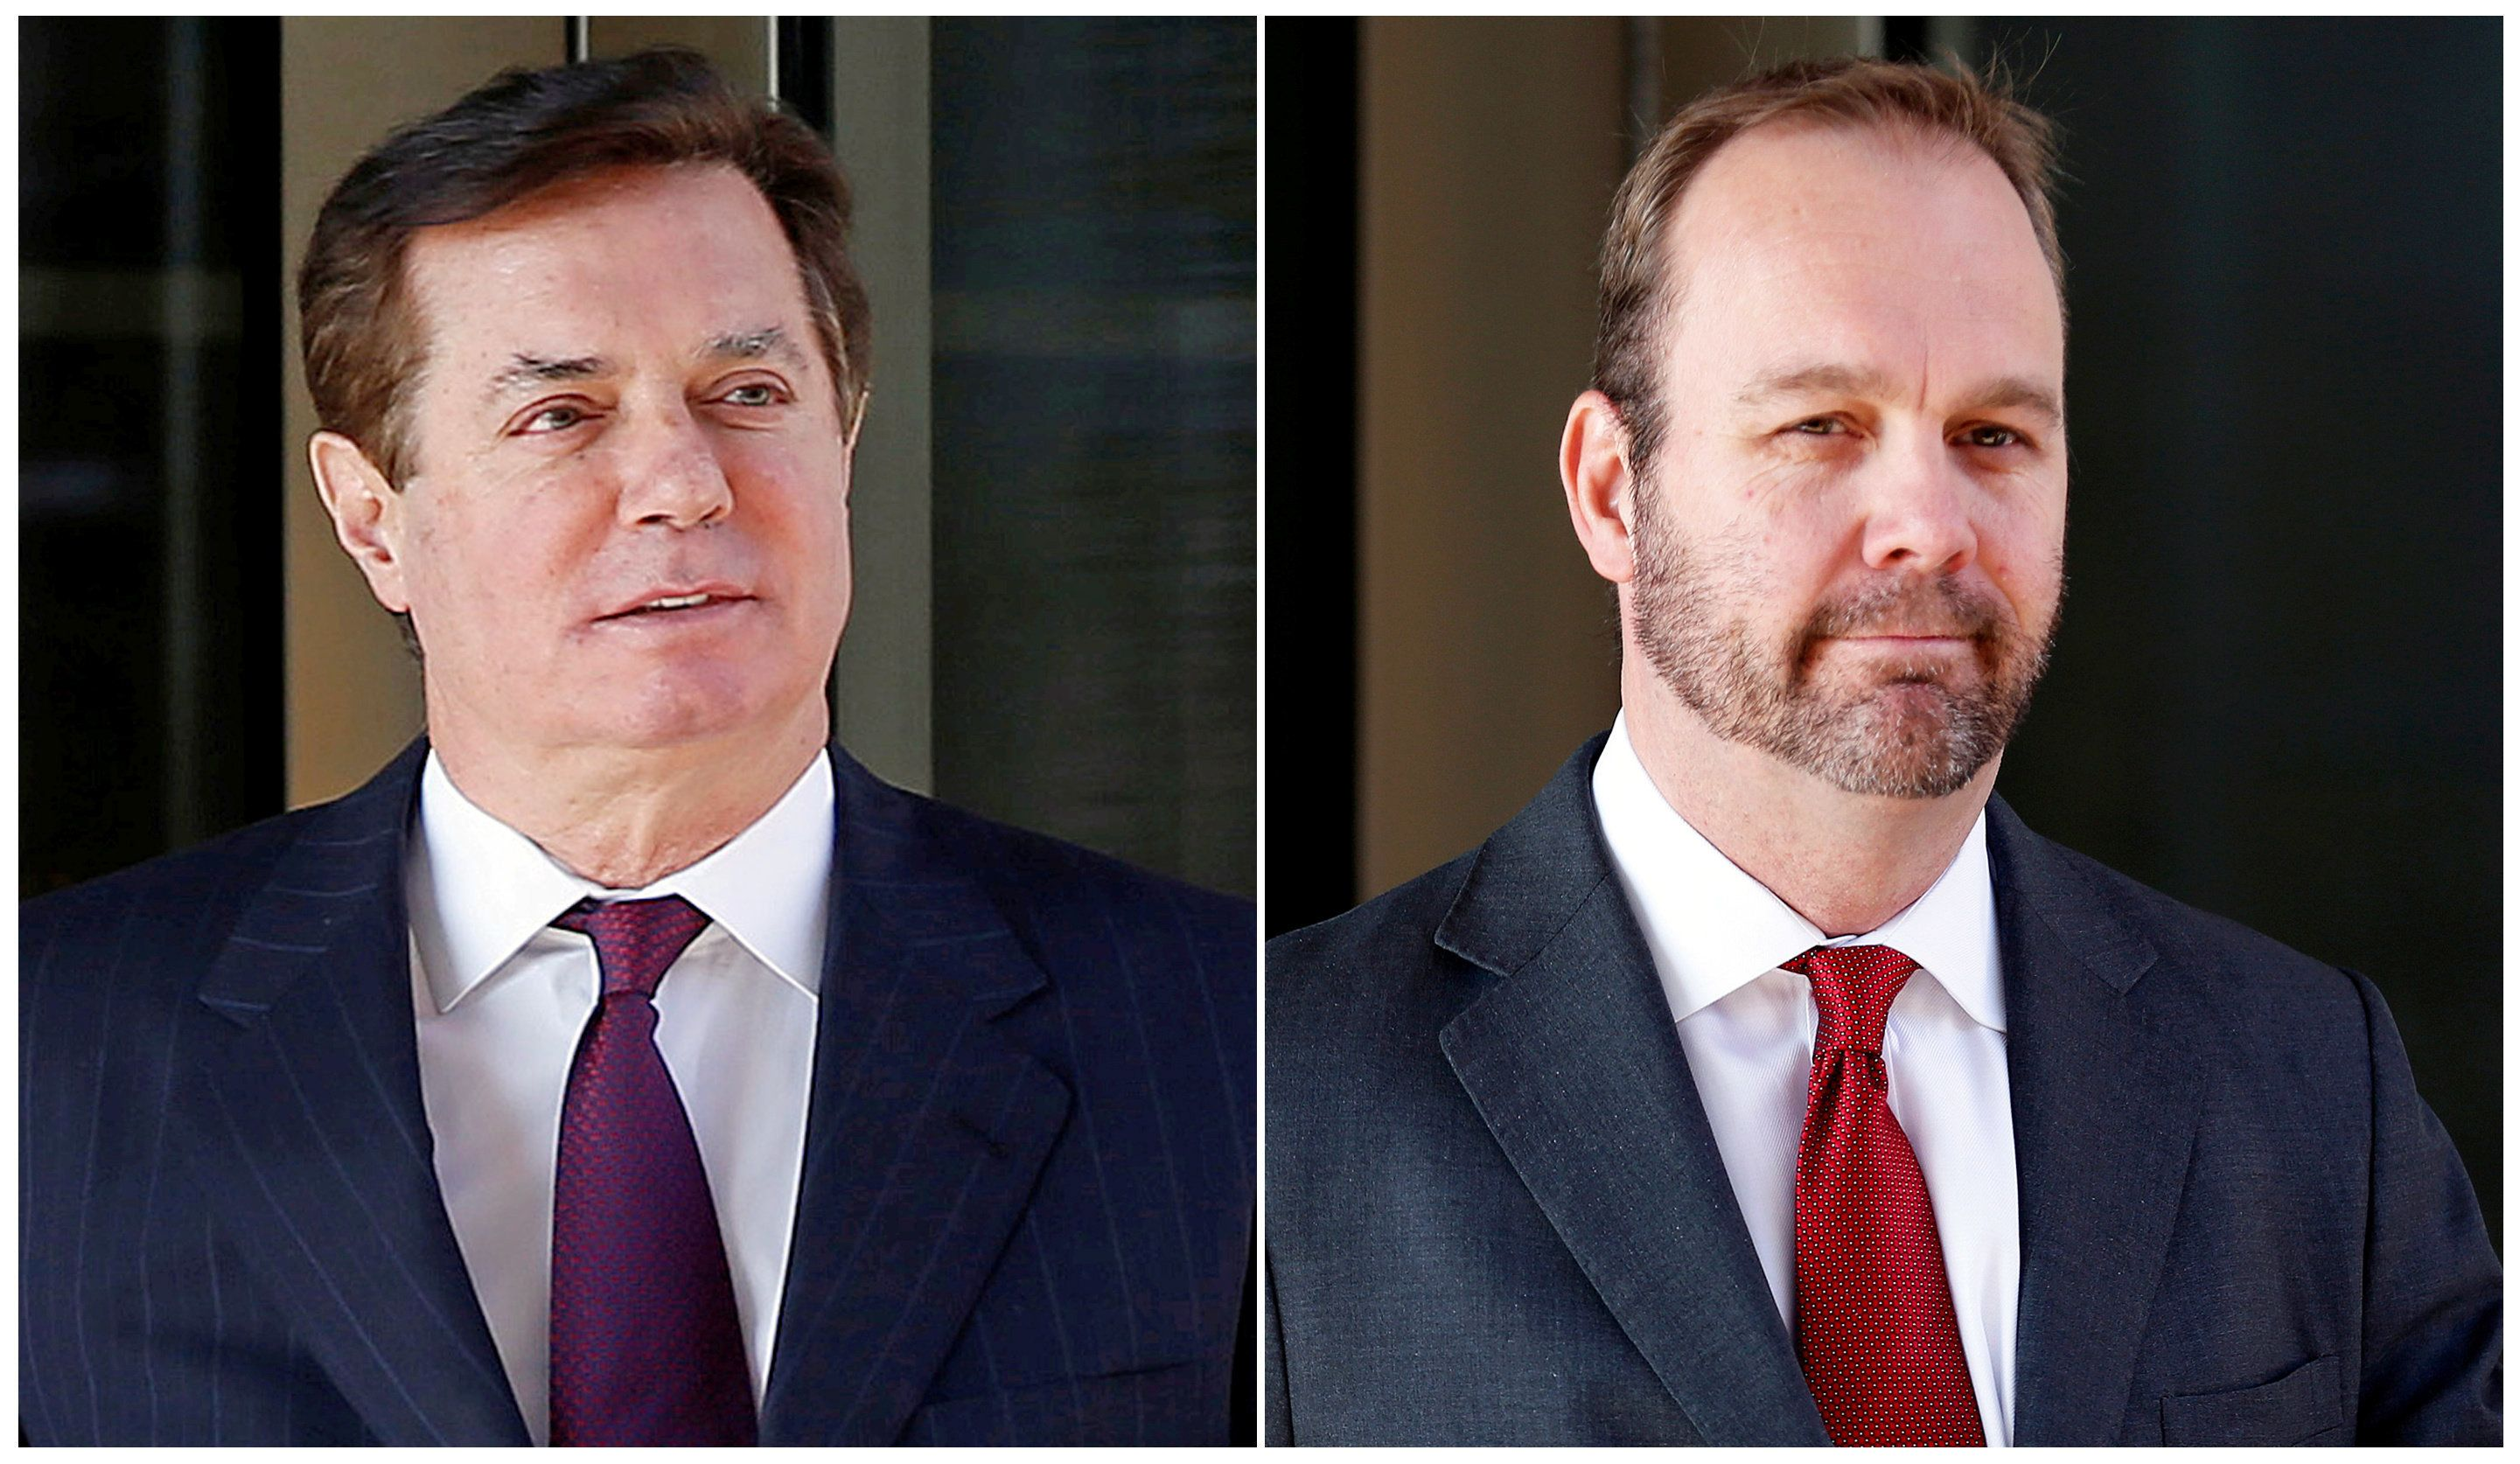 Manafort told son-in-law to lie about living in condo, prosecutors say